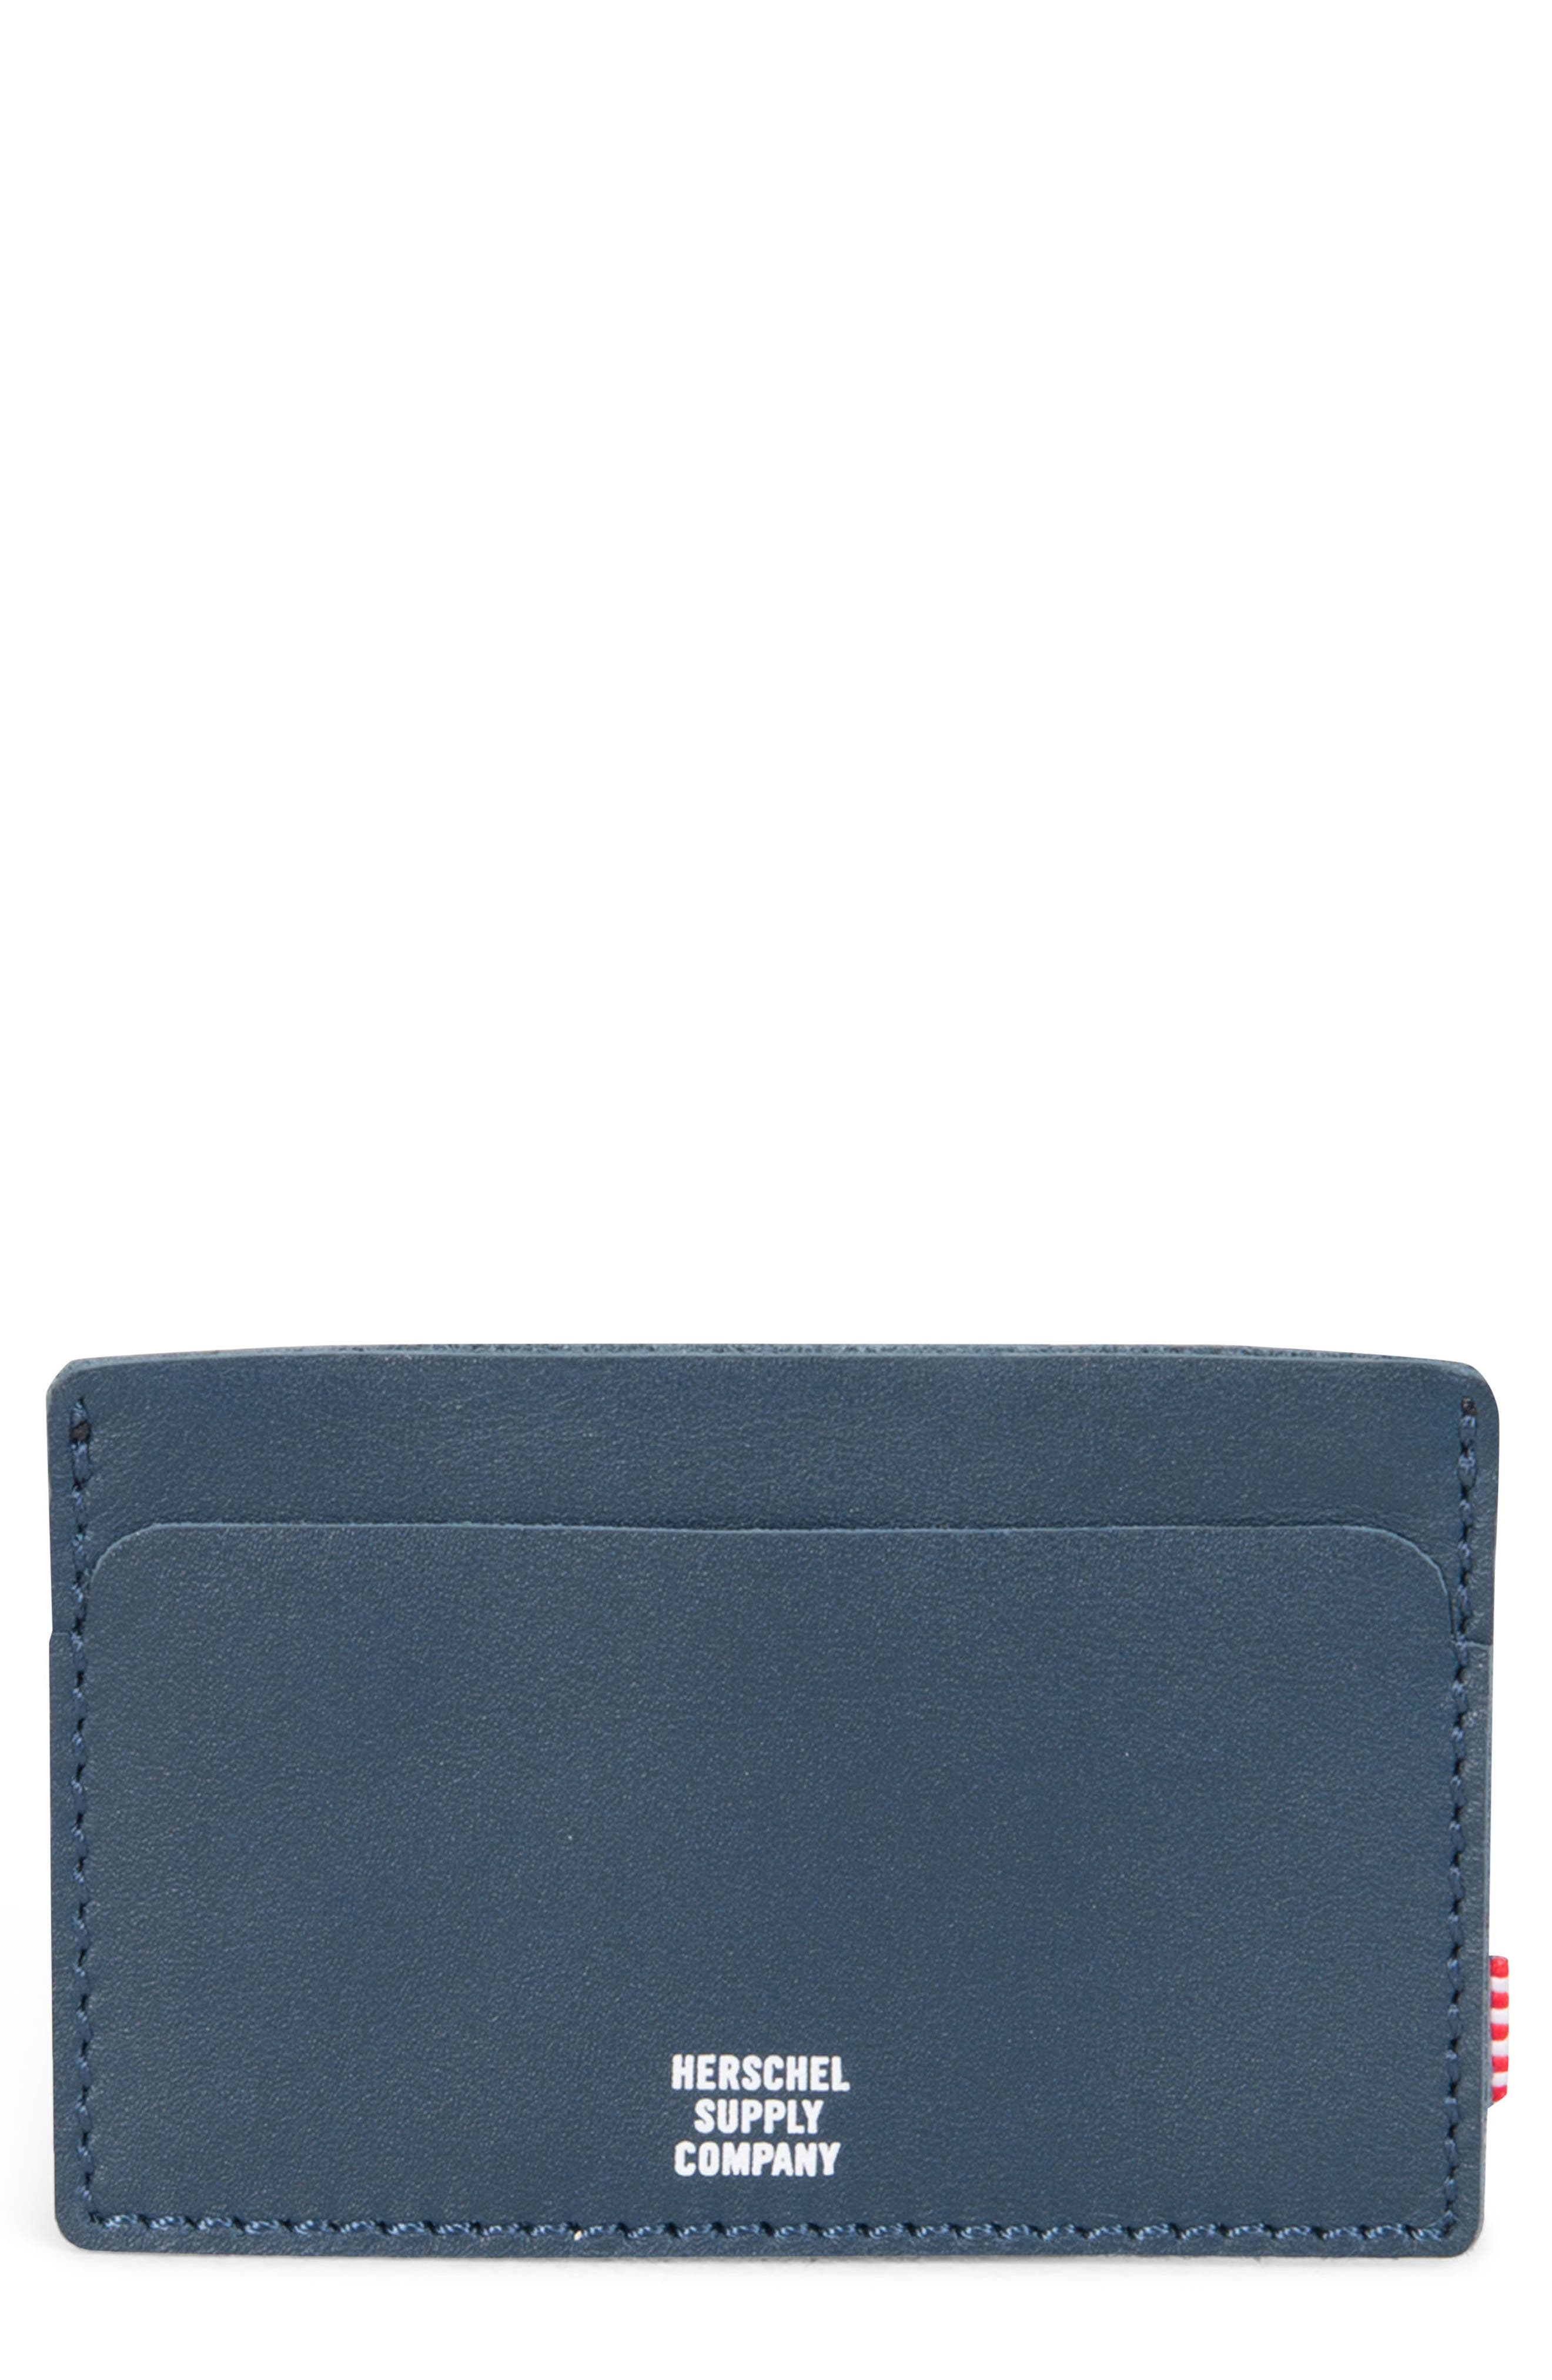 Herschel Supply Co. Felix Card Case